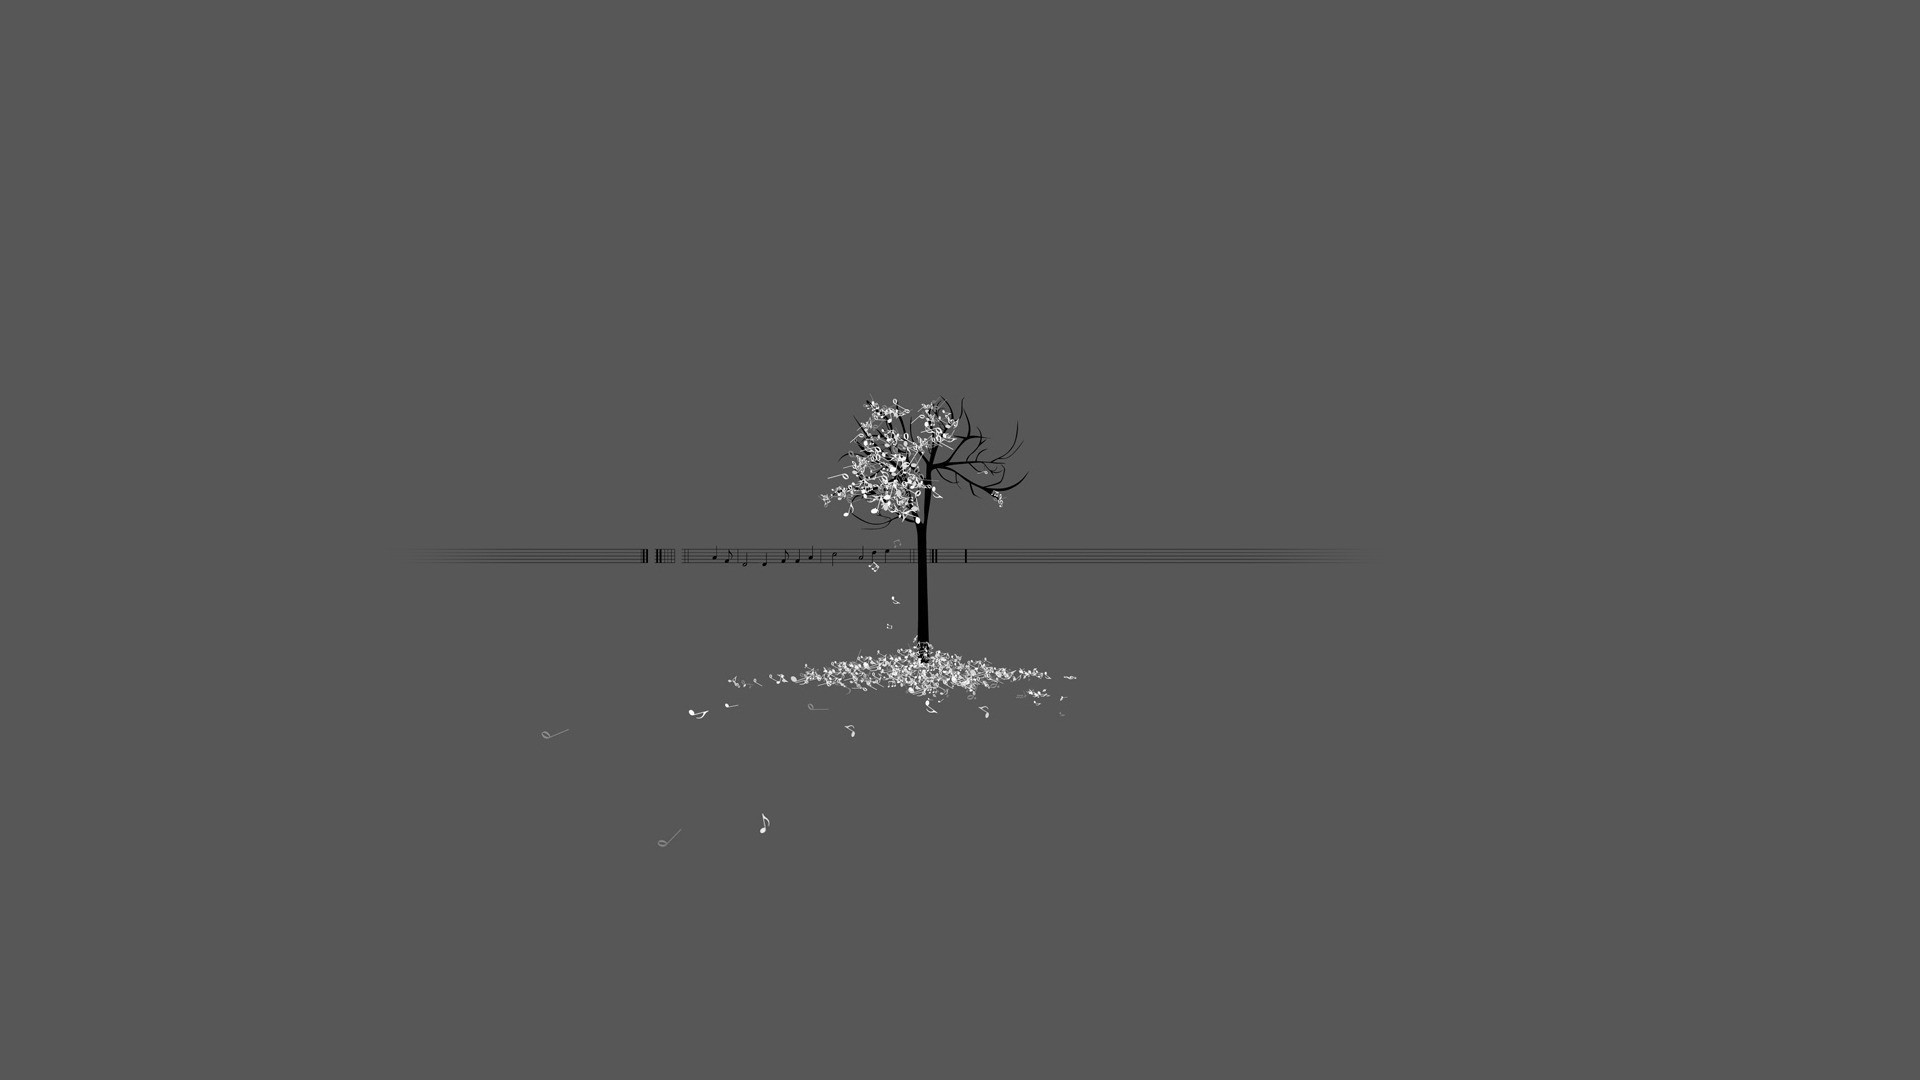 Minimalistic-trees-musical-gray-background-1920x1080-trees-musical-gray-via-www-all-i-wallpaper-wp3808290